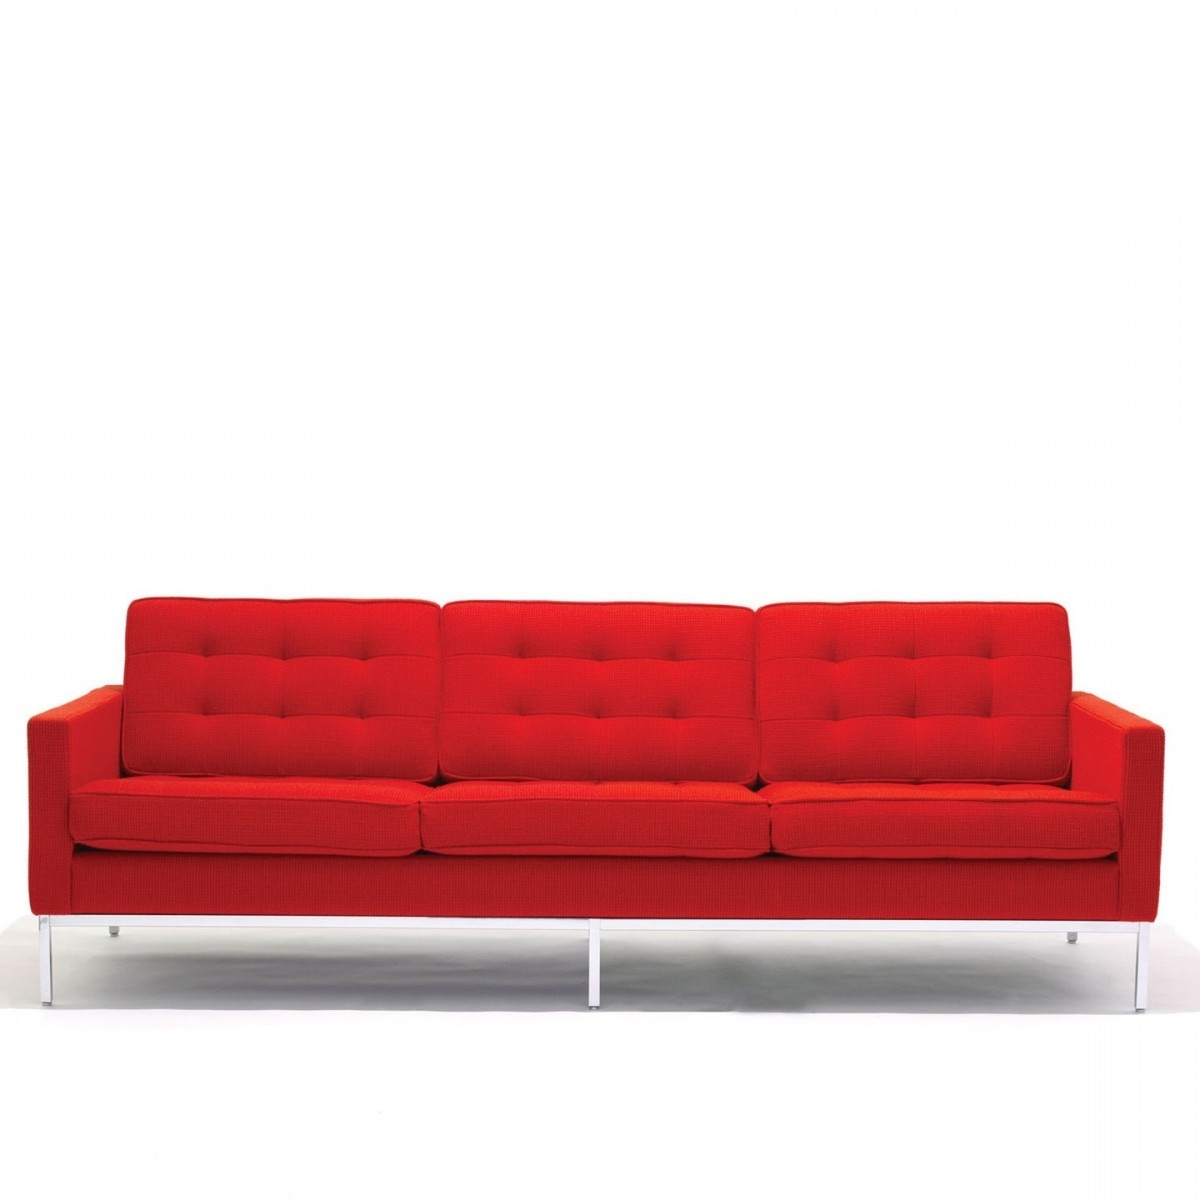 Florence Knoll 3 Seater Sofas Inside Most Current Florence Knoll 3 Seat Sofa (View 2 of 15)